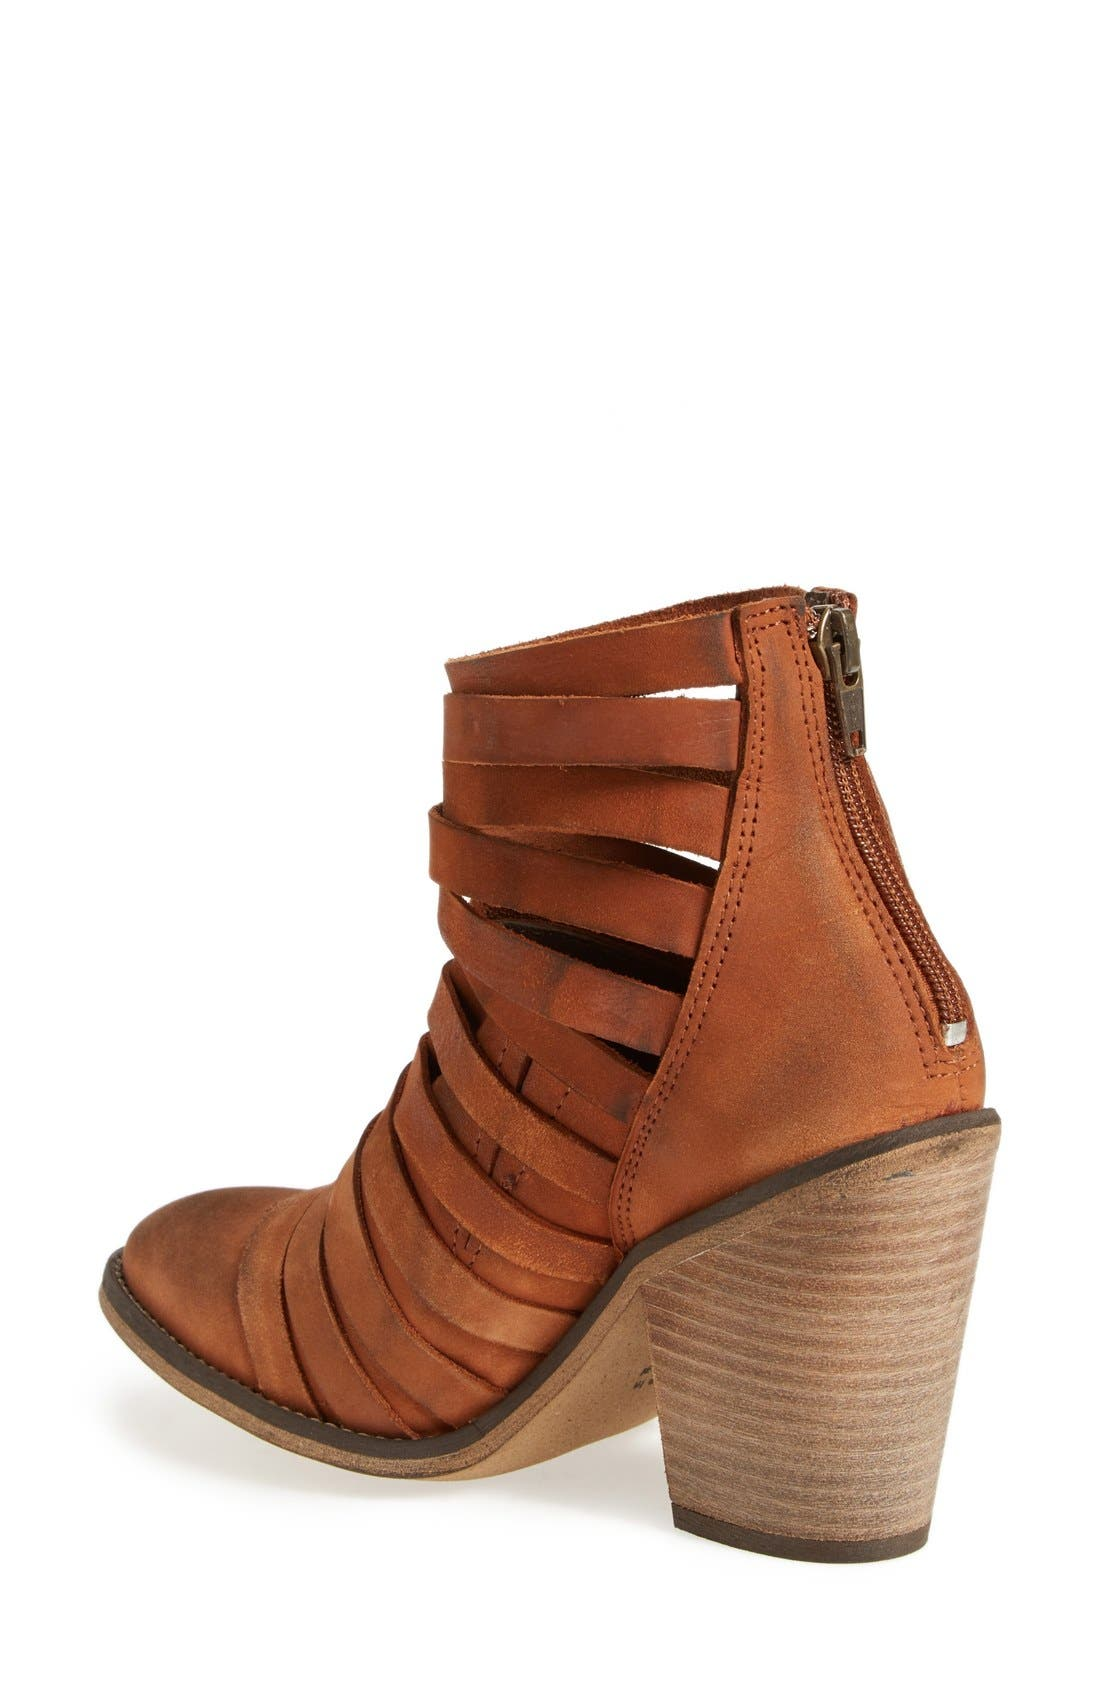 Alternate Image 2  - Free People 'Hybrid' Strappy Leather Bootie (Women)